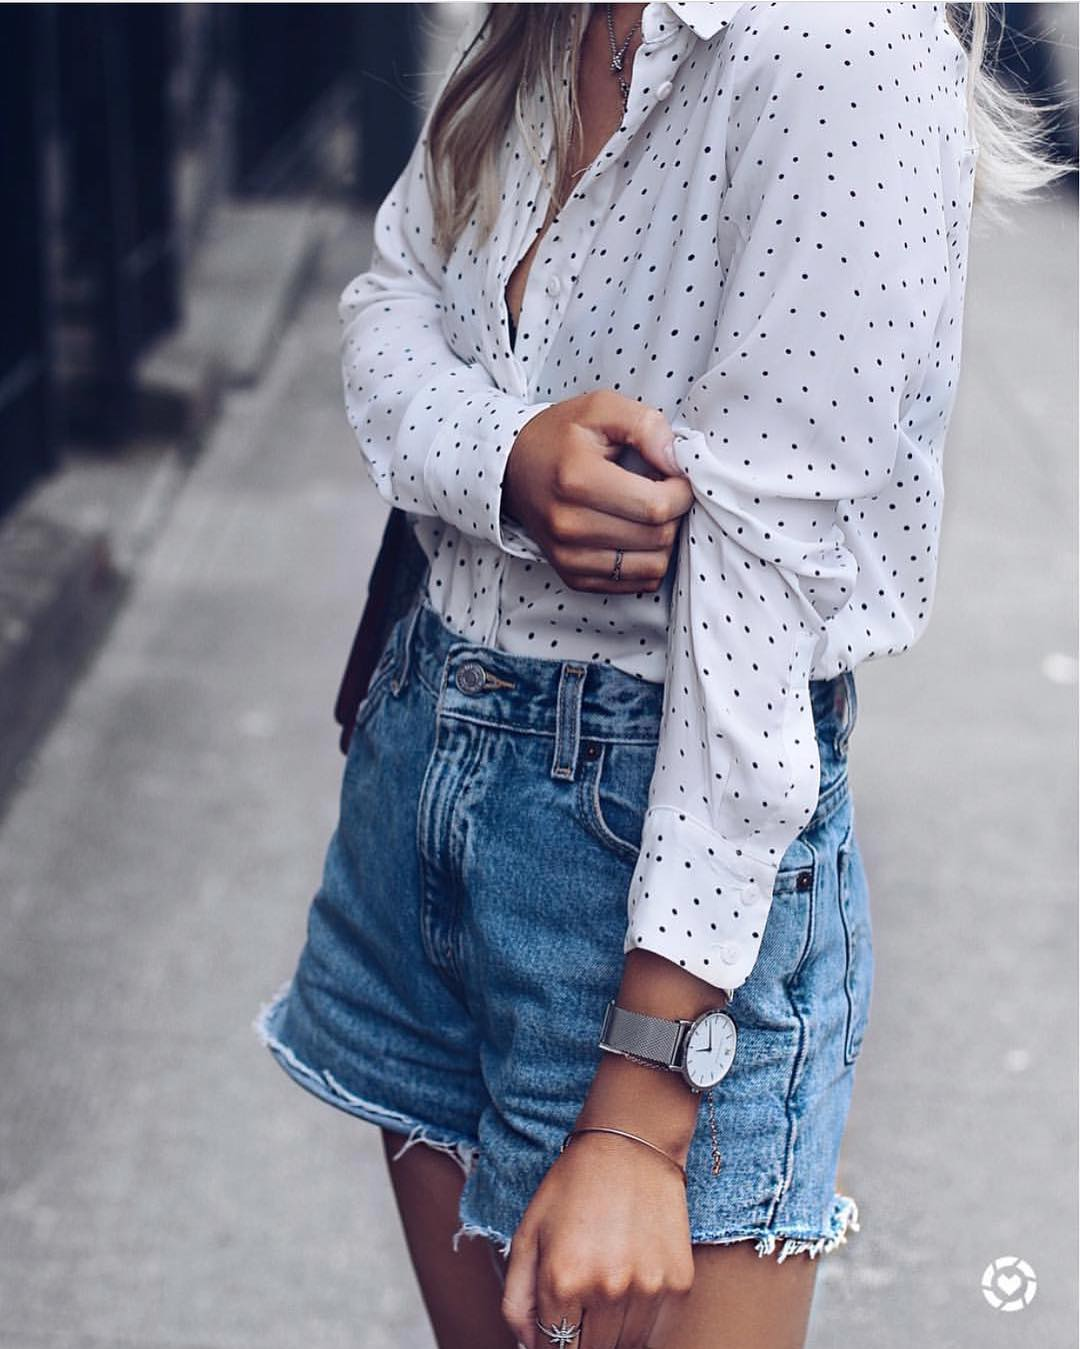 How To Wear White Shirt In Black Dots This Summer 2021